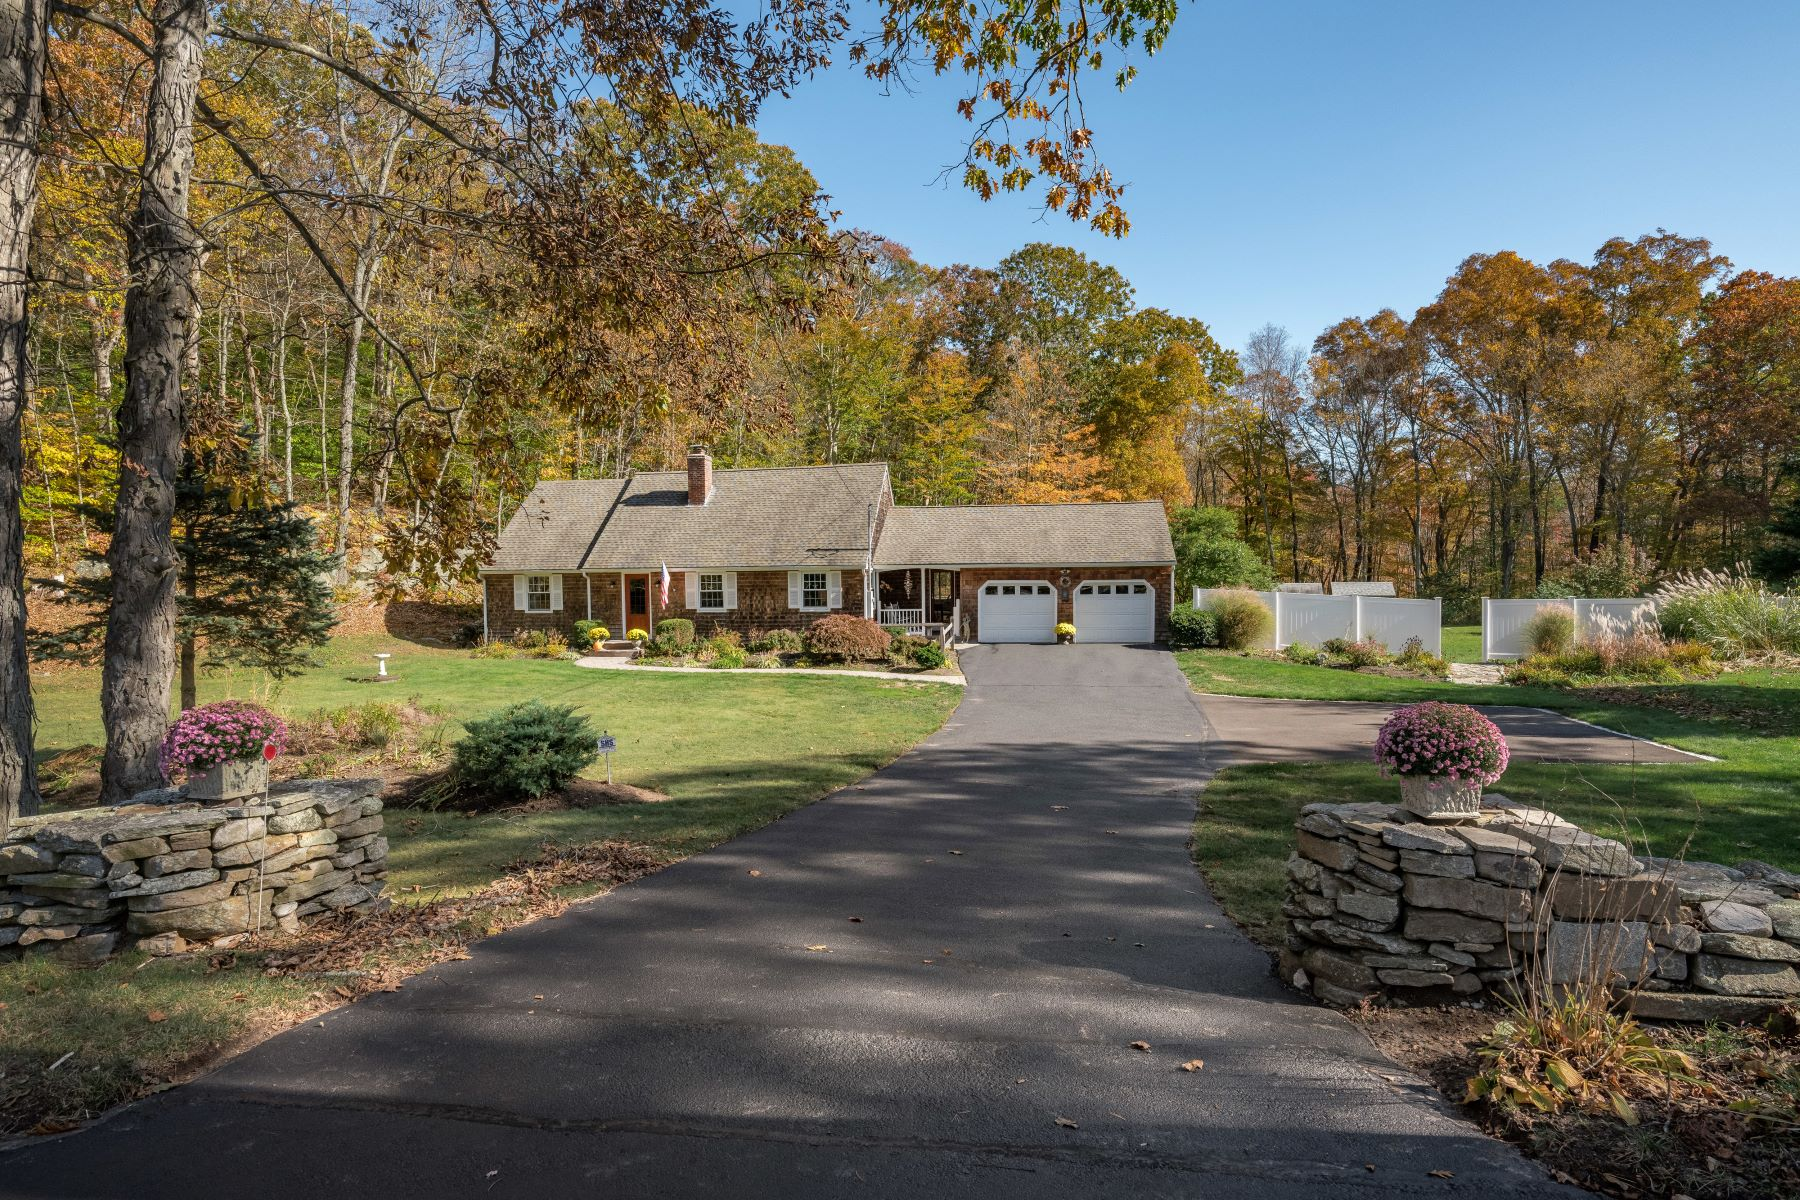 Single Family Homes for Active at Updated & Well-Maintained Cape on Nearly 3 Acres! 258 Pendleton Hill Rd North Stonington, Connecticut 06359 United States